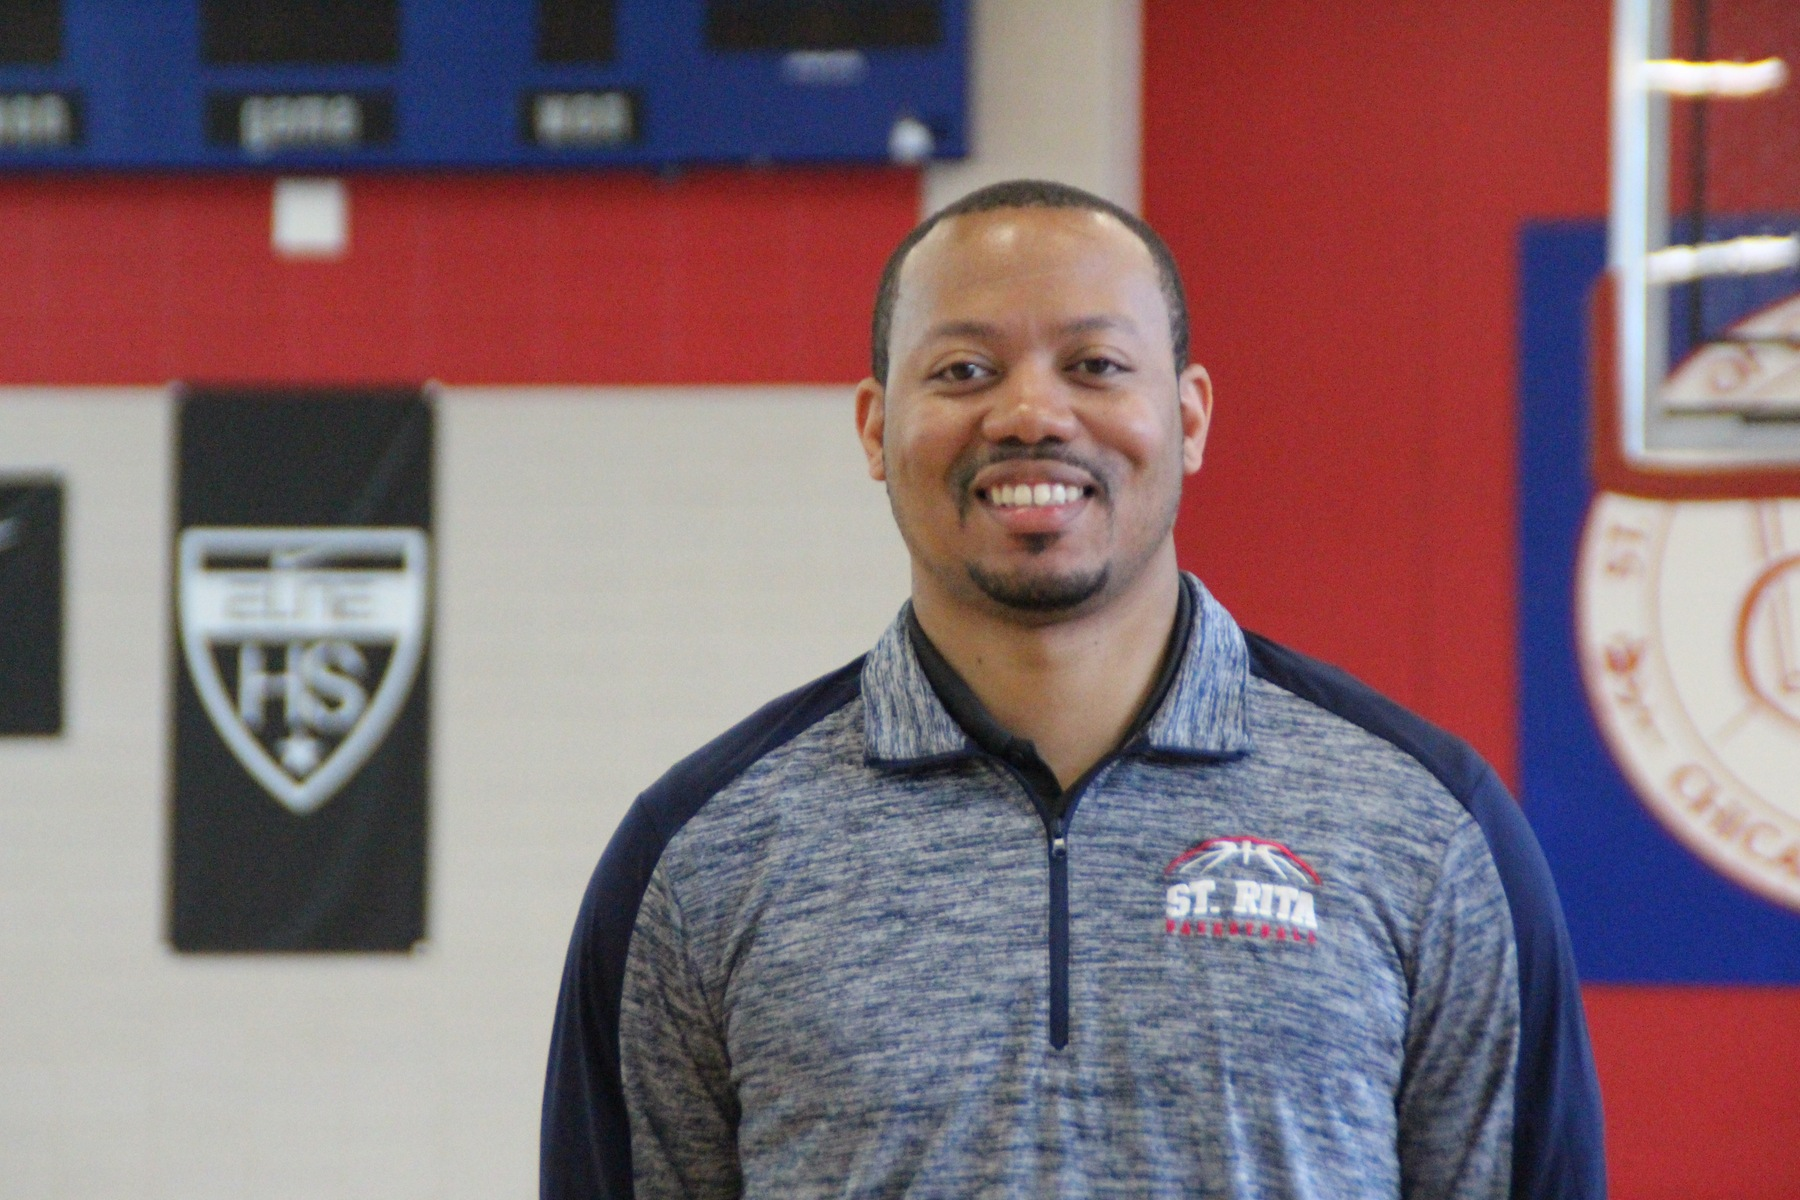 St. Rita High School Appoints Roshawn Russell '08 as Head Basketball Coach